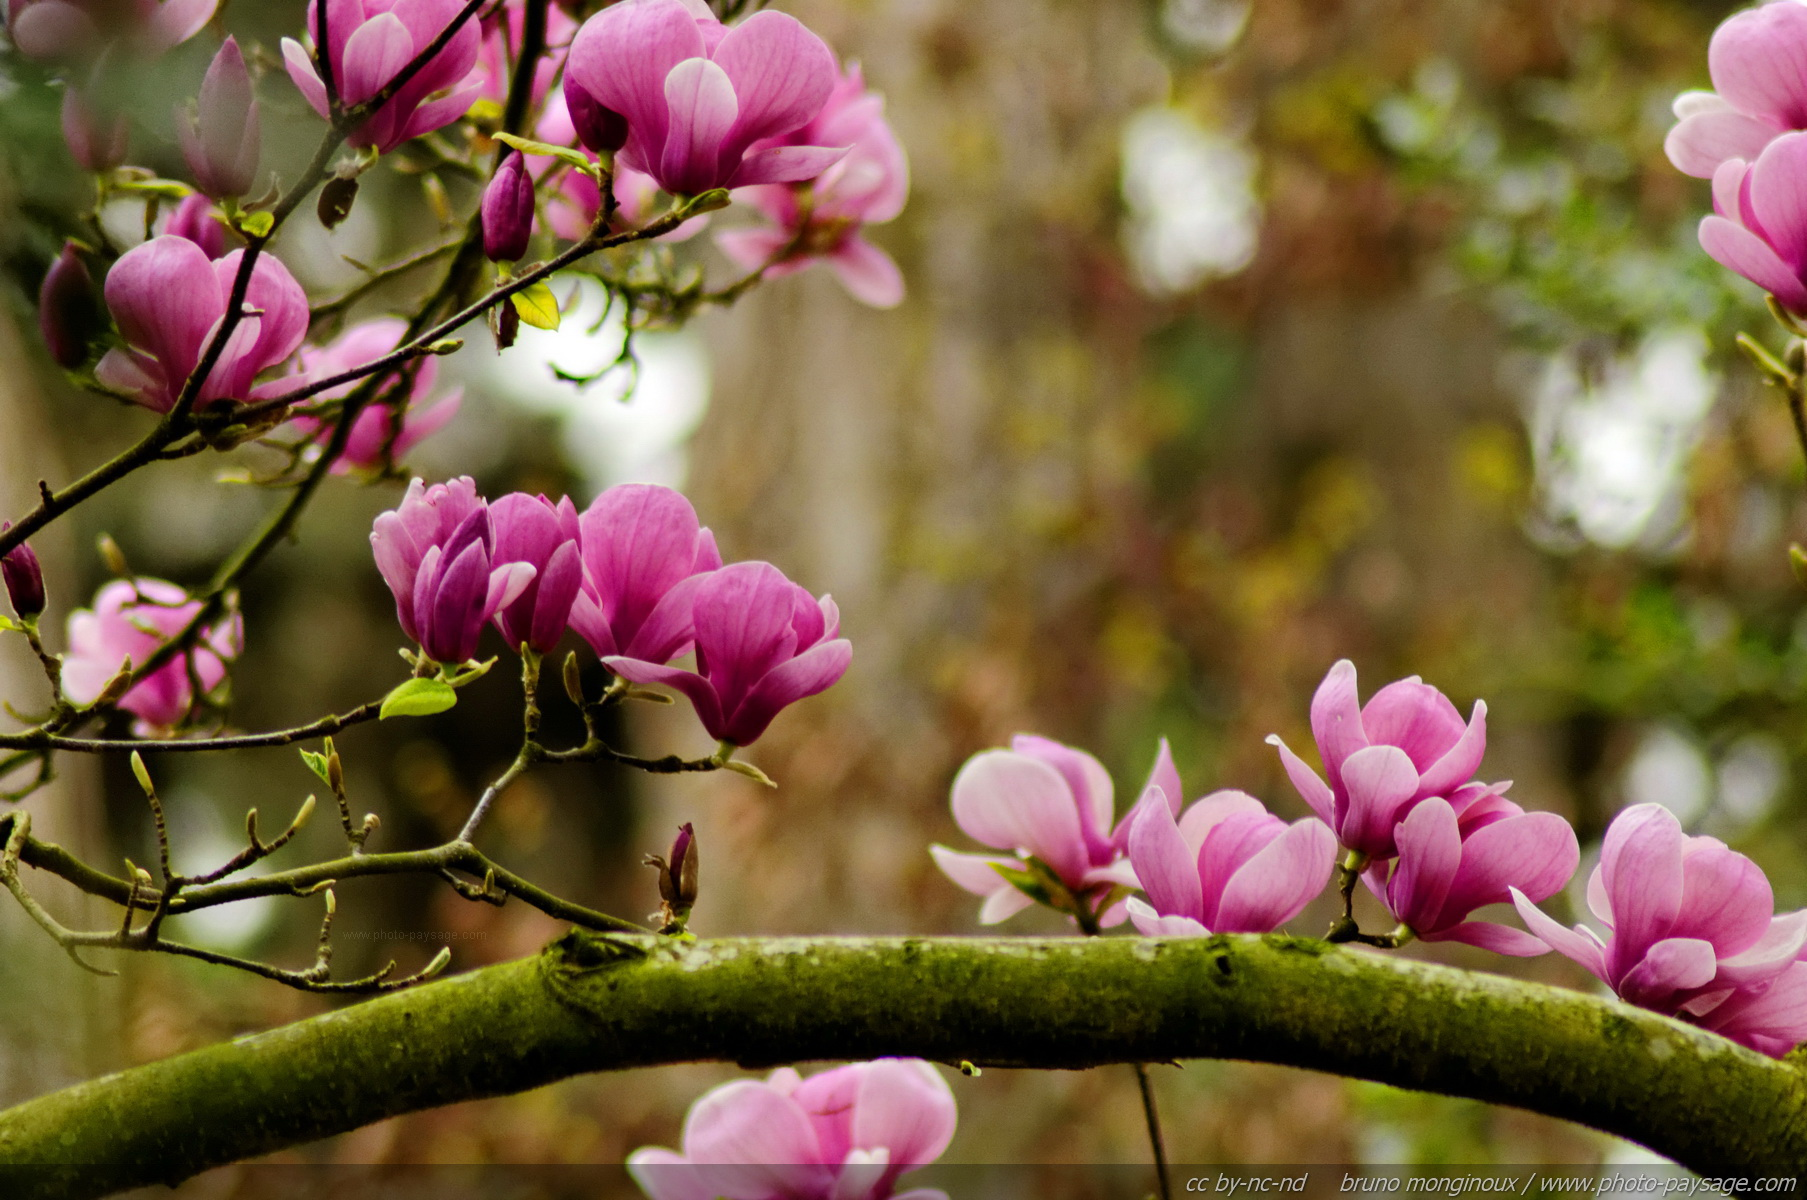 foto de Les plus belles images de printemps - Photo-Paysage.com Photo ...